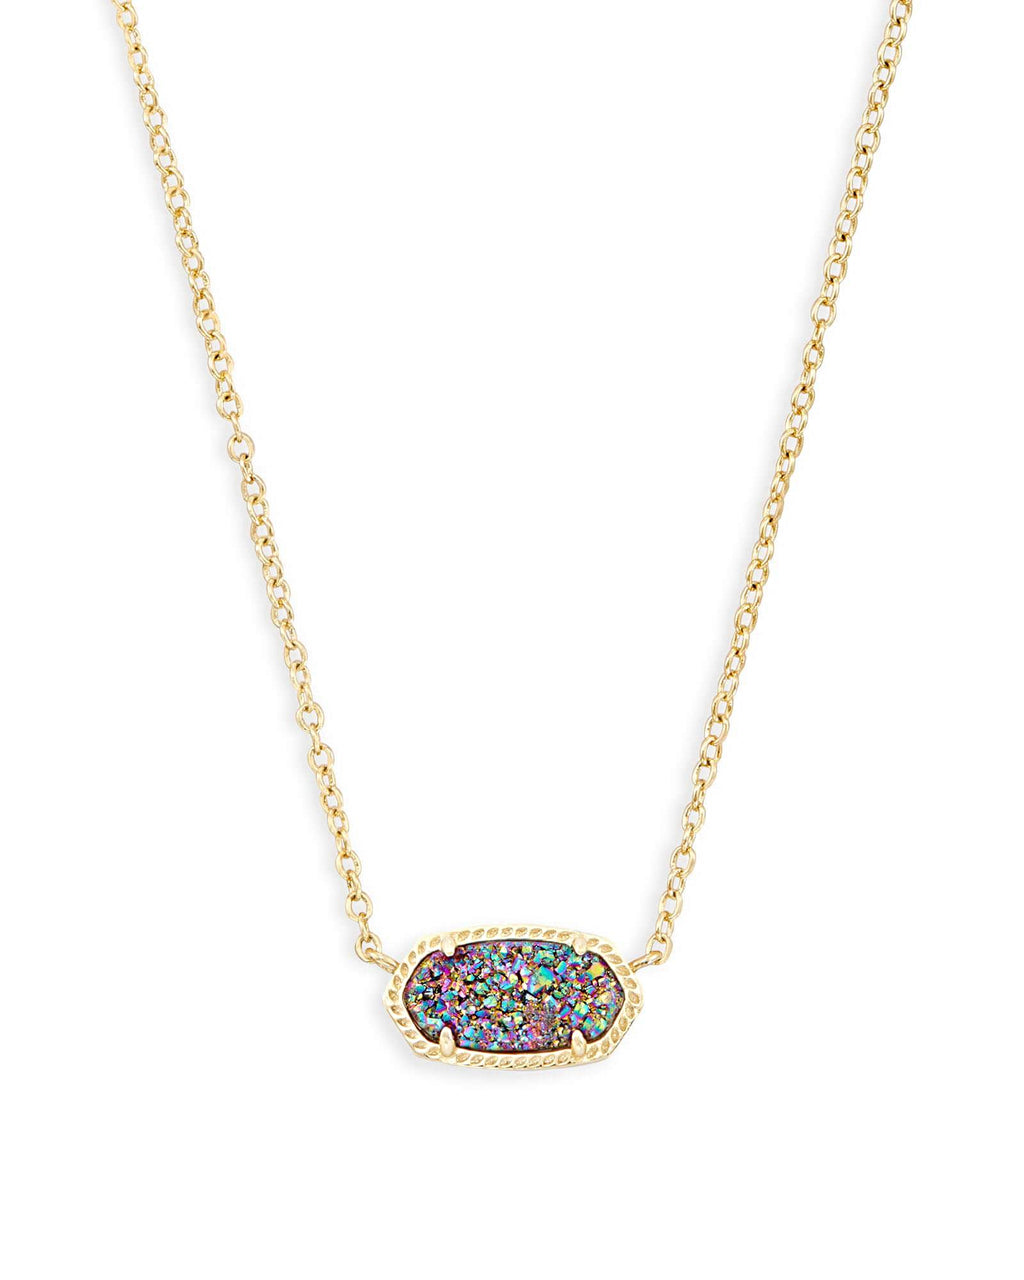 Kendra Scott Elisa Necklace - Multi Drusy